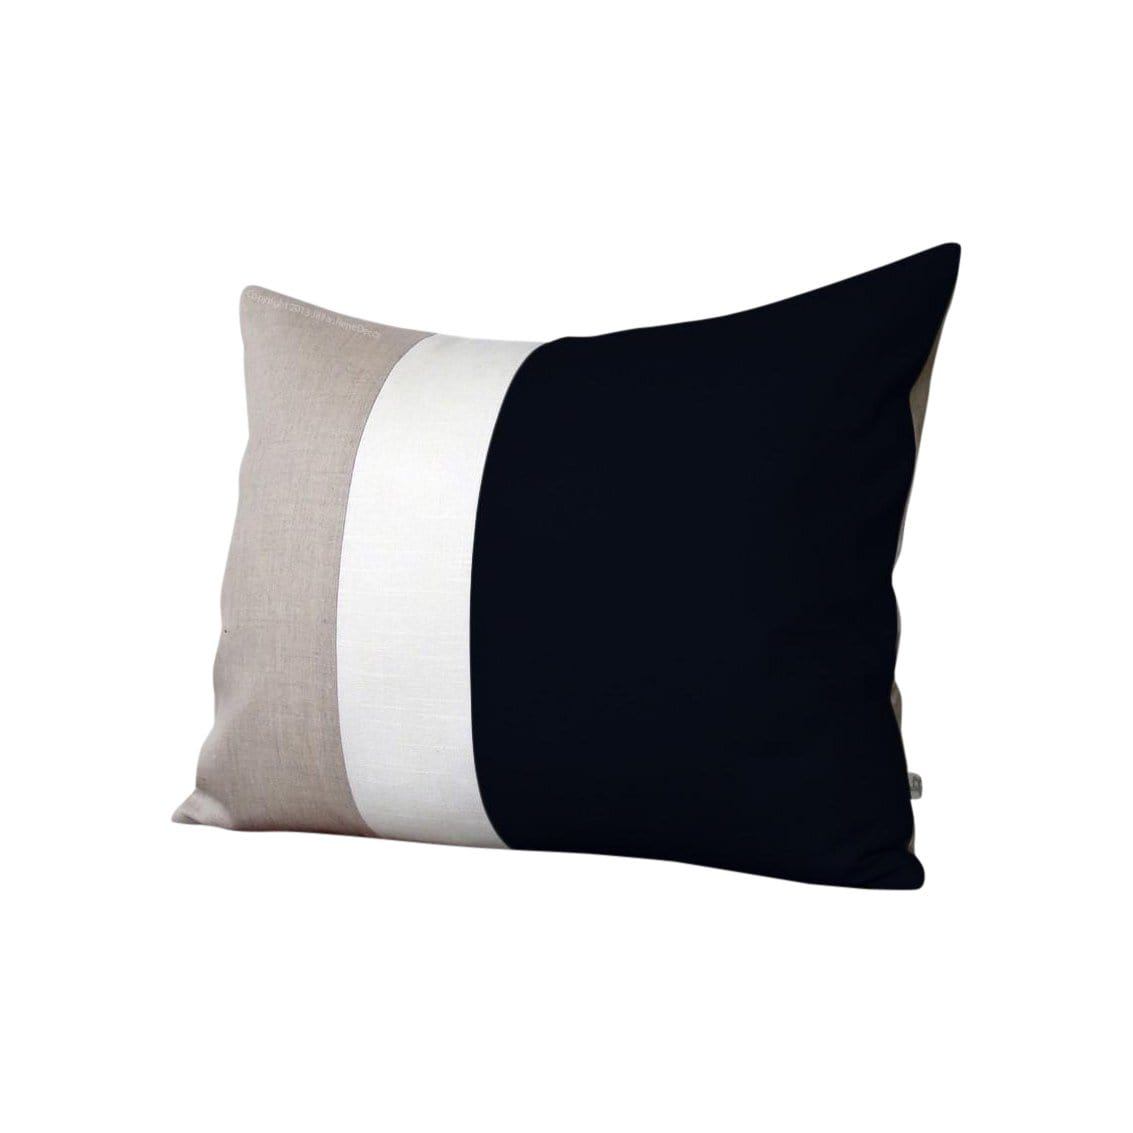 Jillian Rene Decor Cushions + Throws Colorblock Black + Cream Pillow